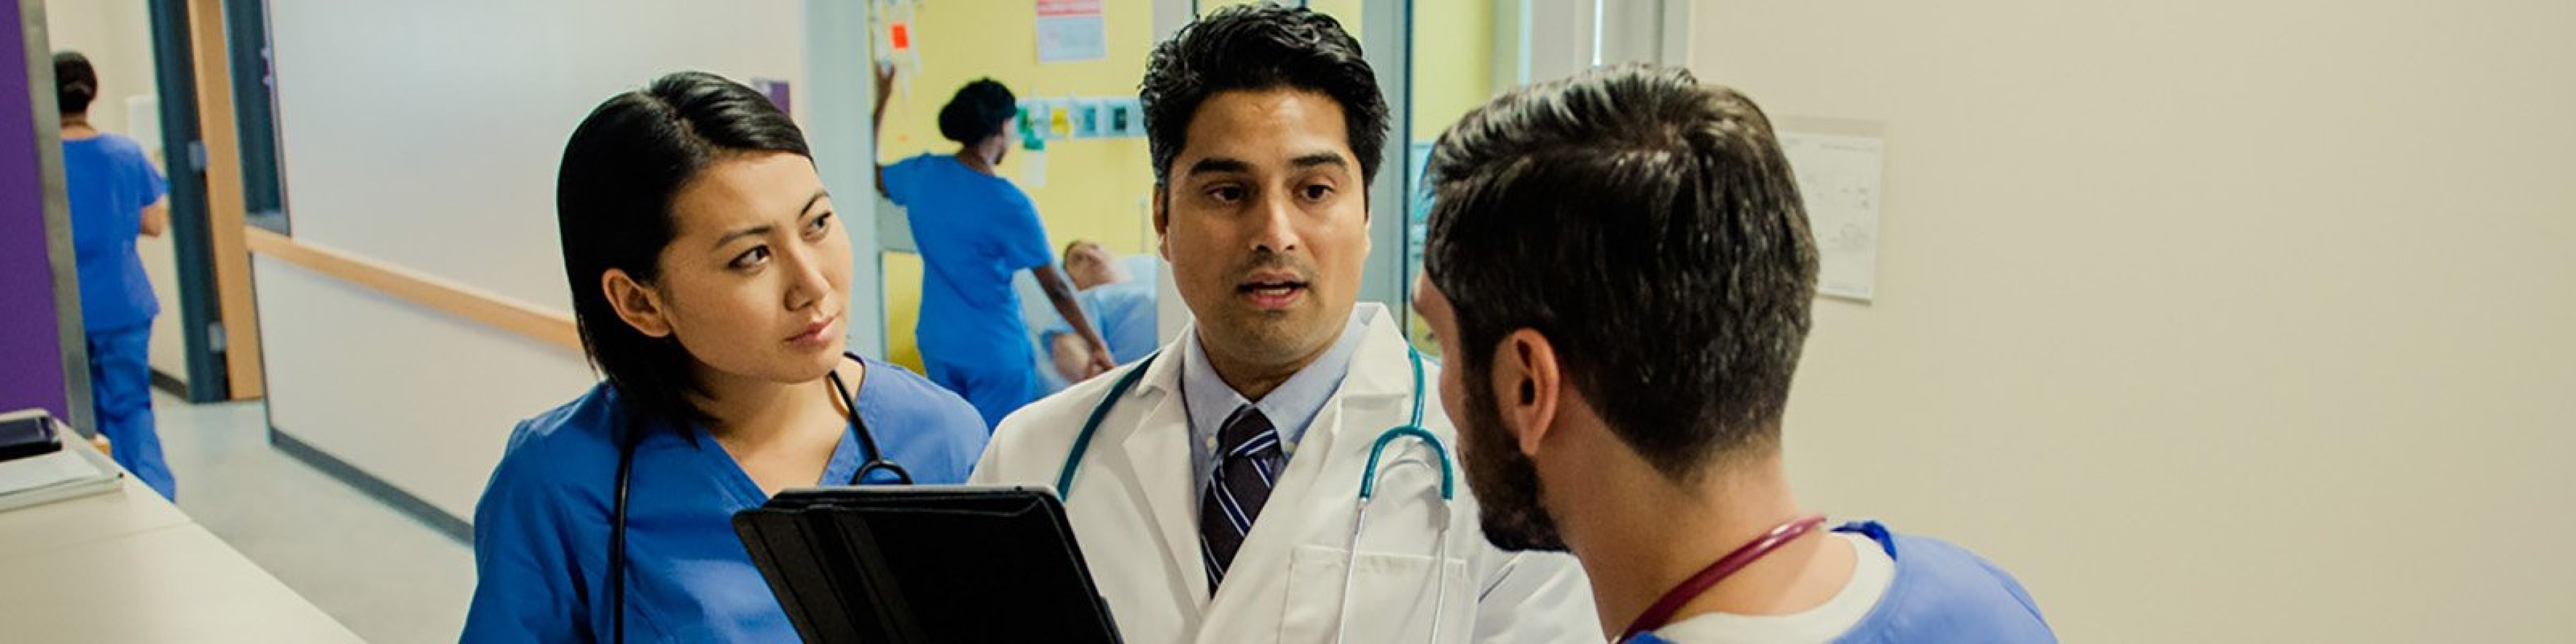 Doctor speaking with male and female nurses at nursing station